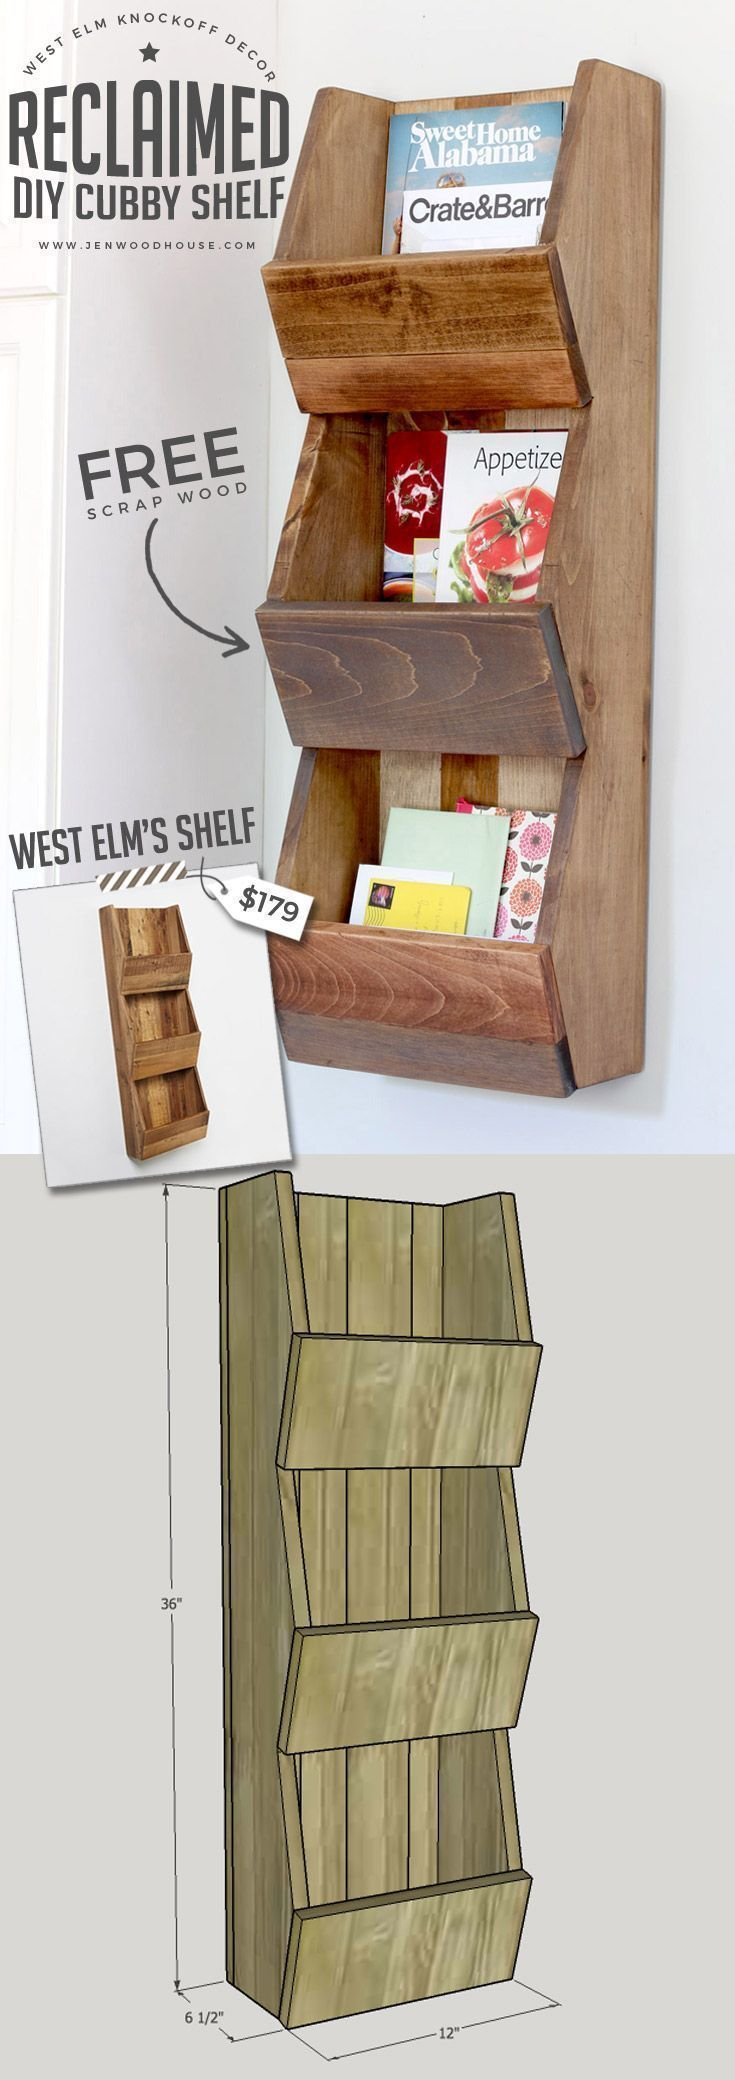 How to's : LOVE THIS! Tutorial on how to build a DIY West Elm knockoff cubby shelf. Build it out of scrap wood!